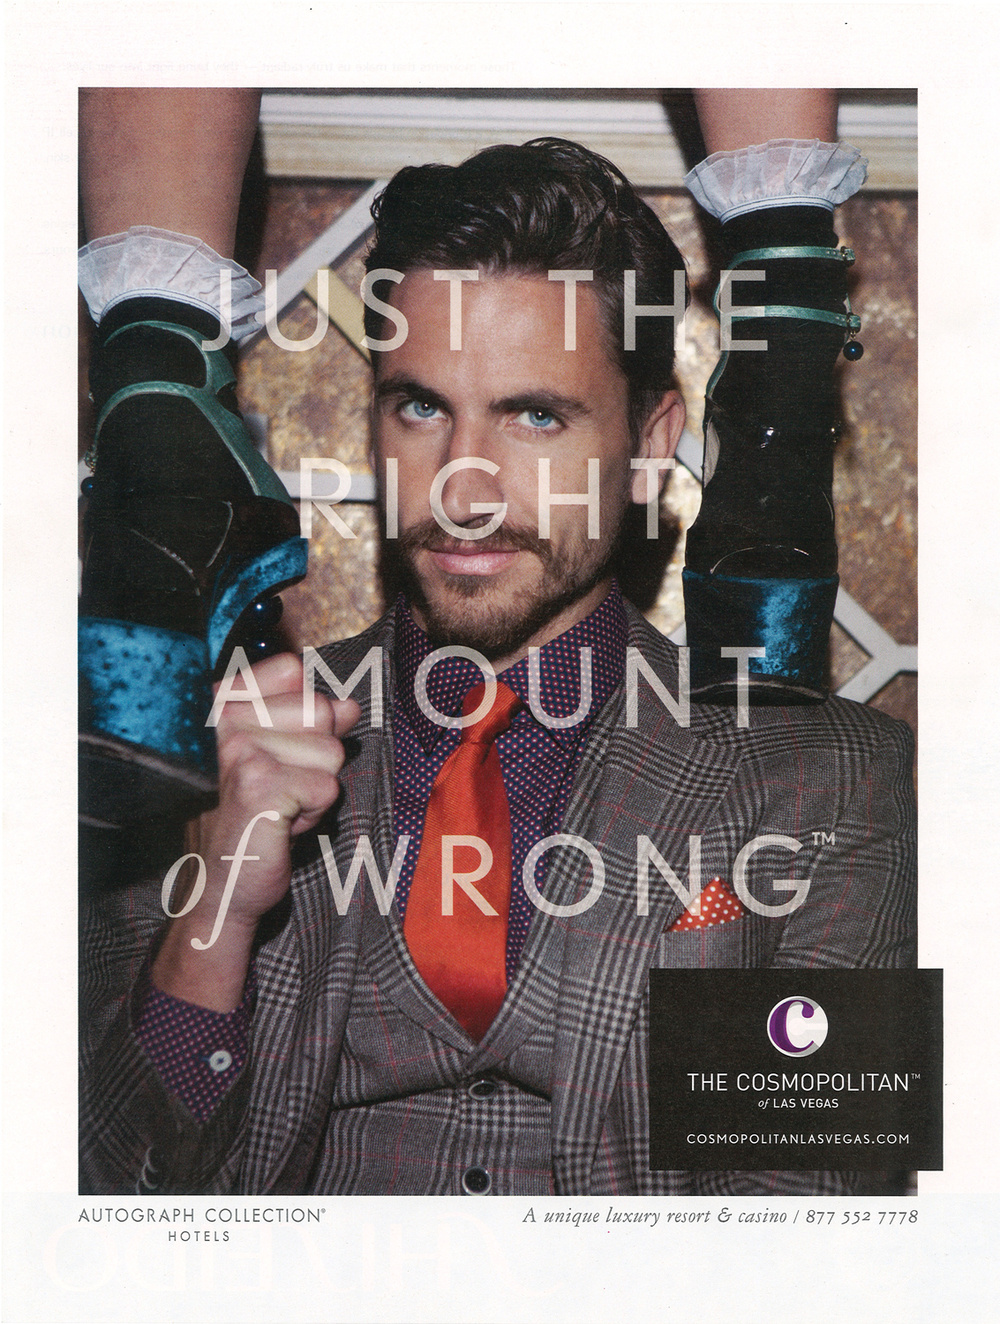 Print ad for The Cosmopolitan